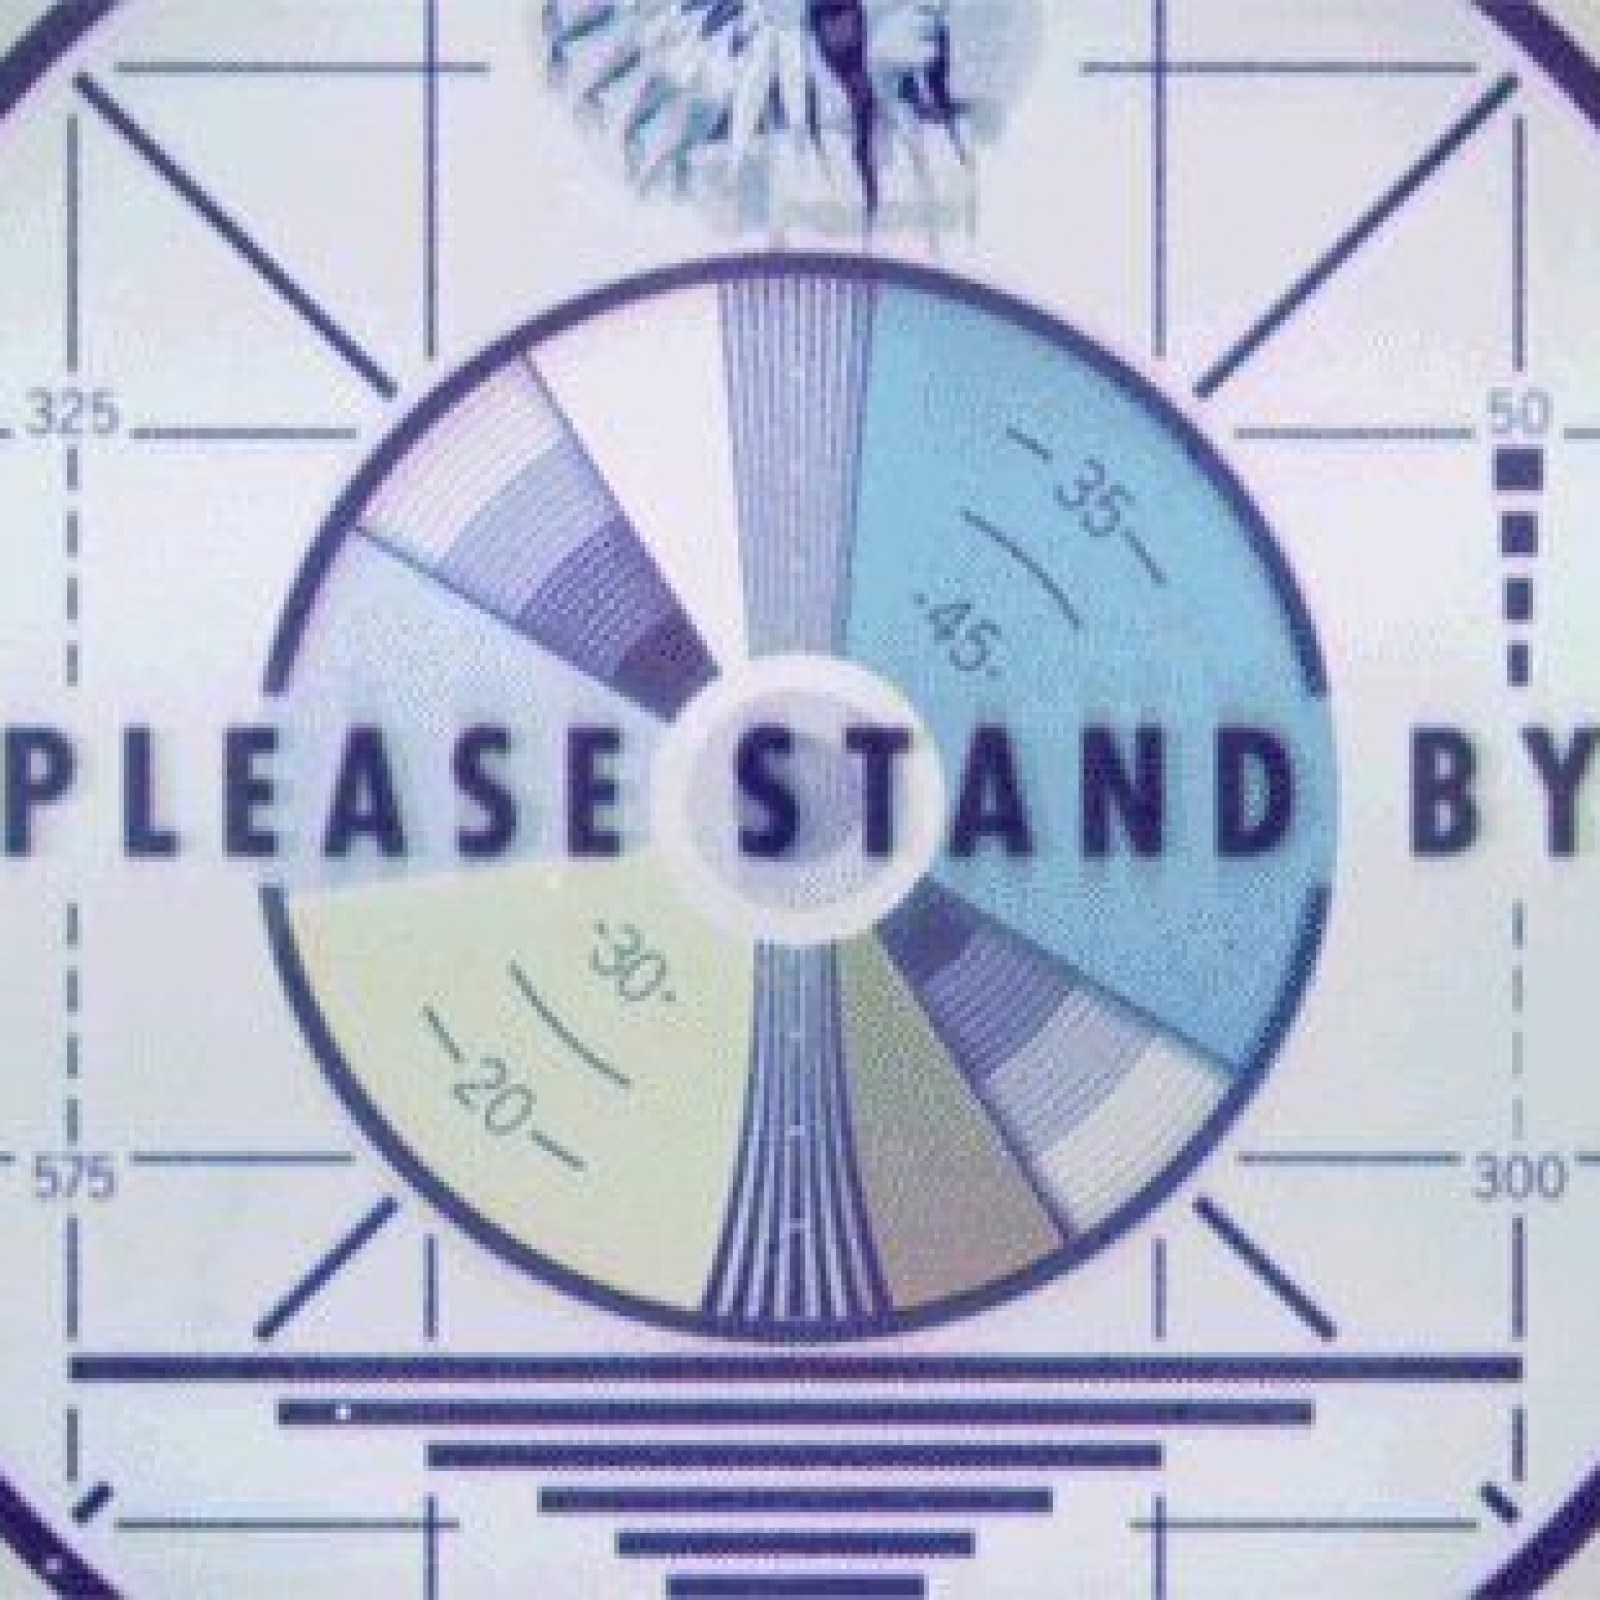 Fallout Rumors Fly After Bethesda Posts Mysterious Tweet